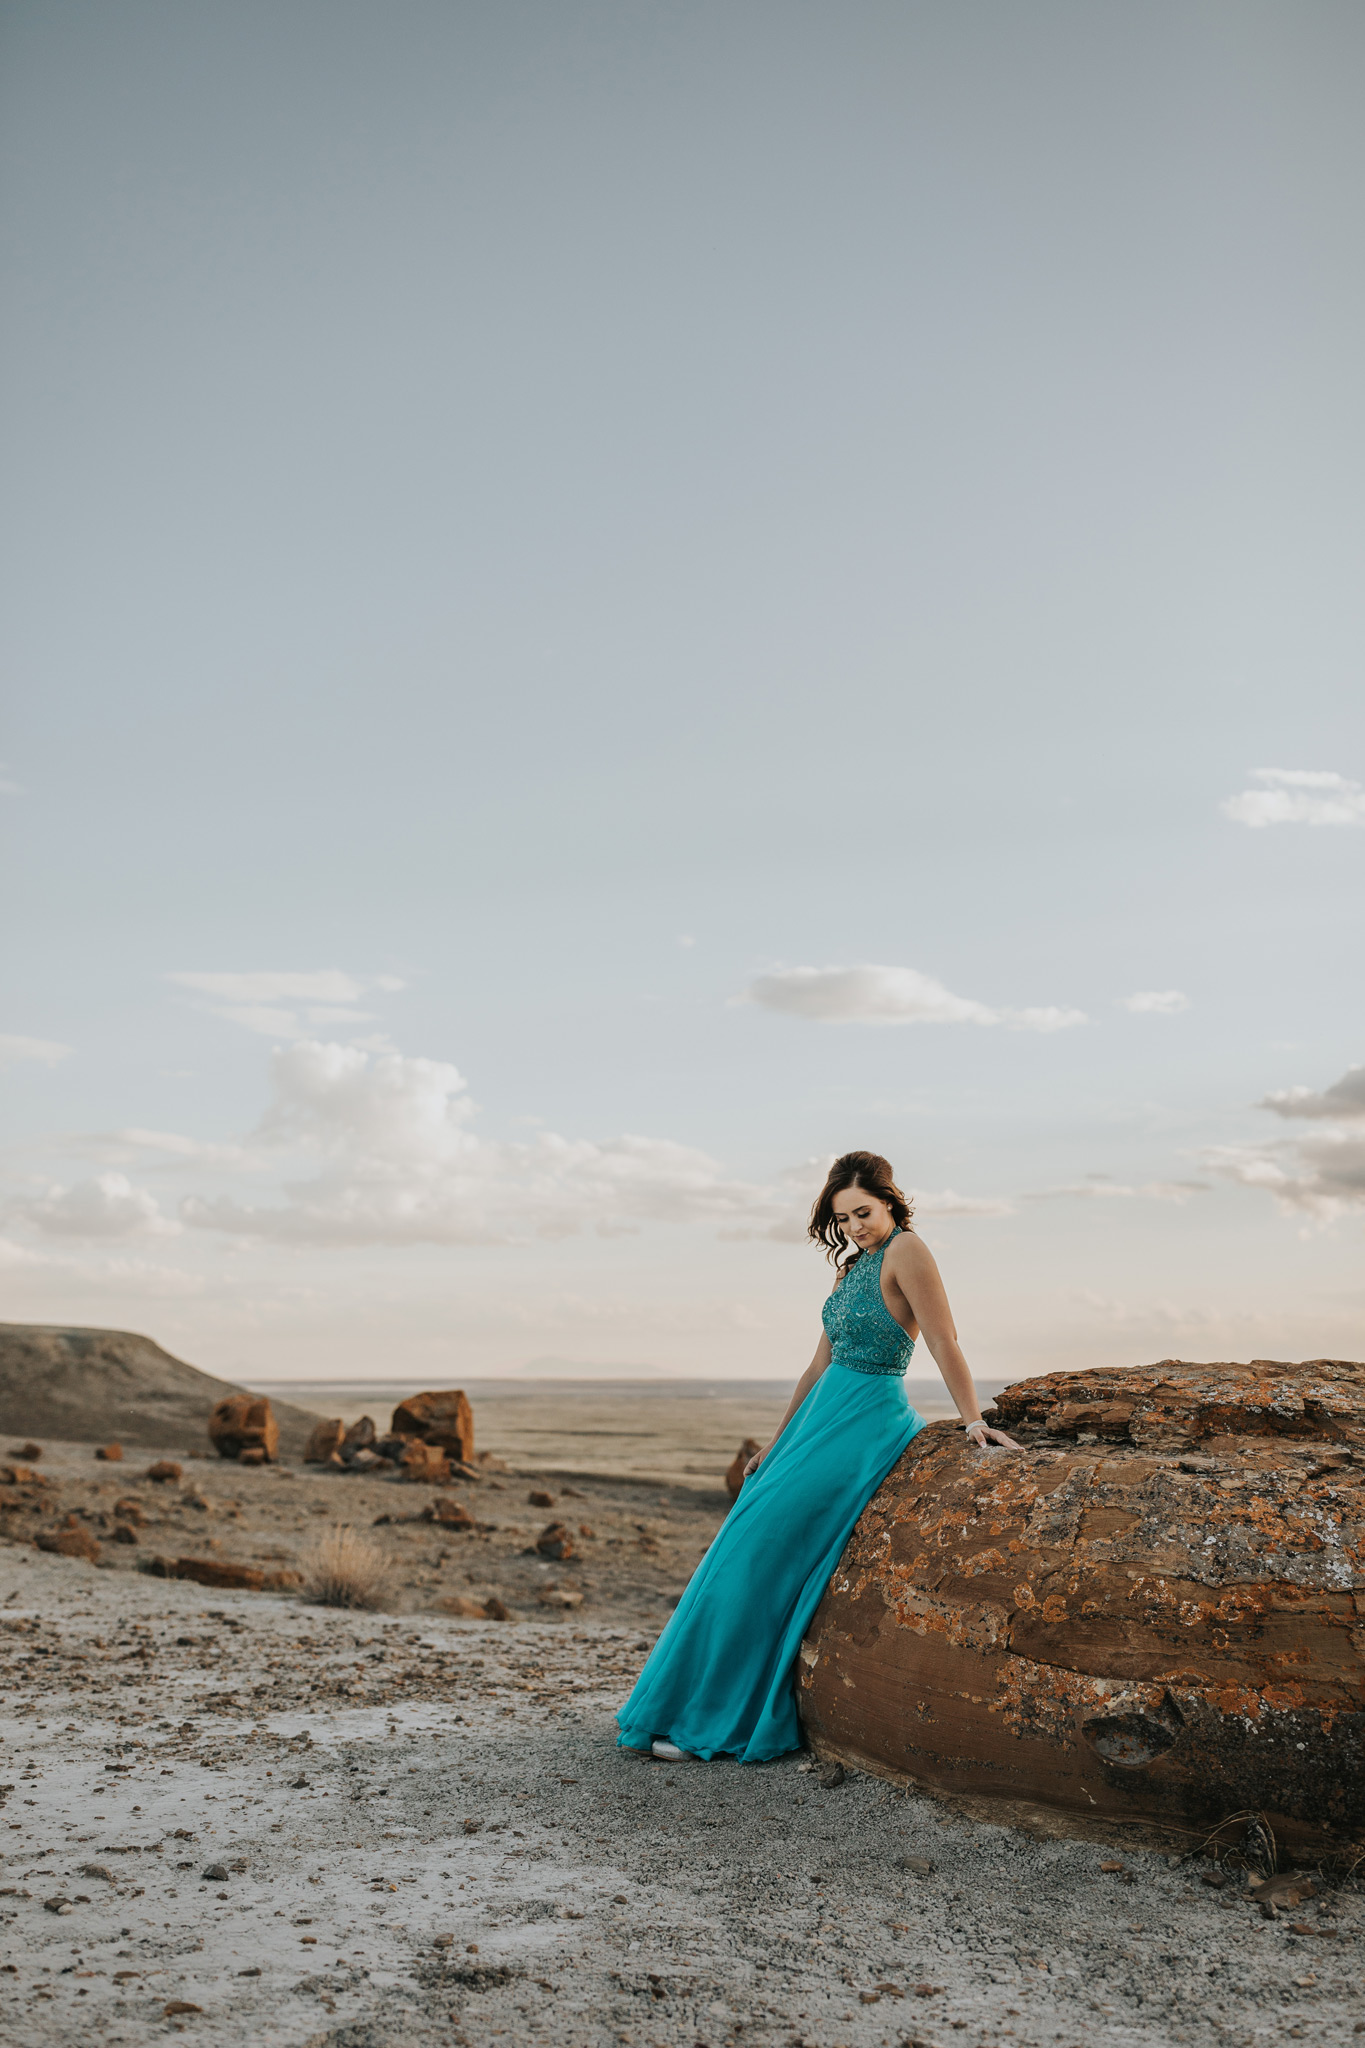 girl in dress standing leaning against large red rock looking down